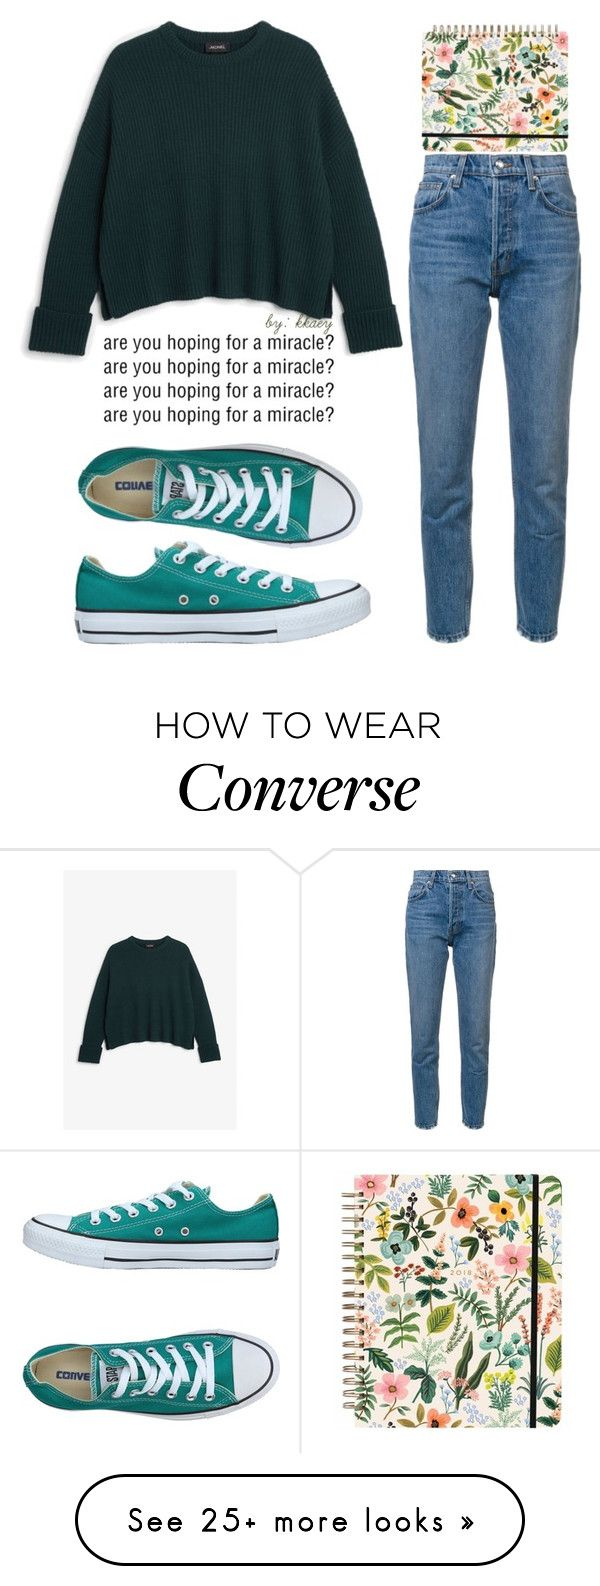 """#PolyPresents: Wish List #19"" by kkaey on Polyvore featuring 10 Crosby Derek Lam, Monki, Converse, contestentry and polyPresents"